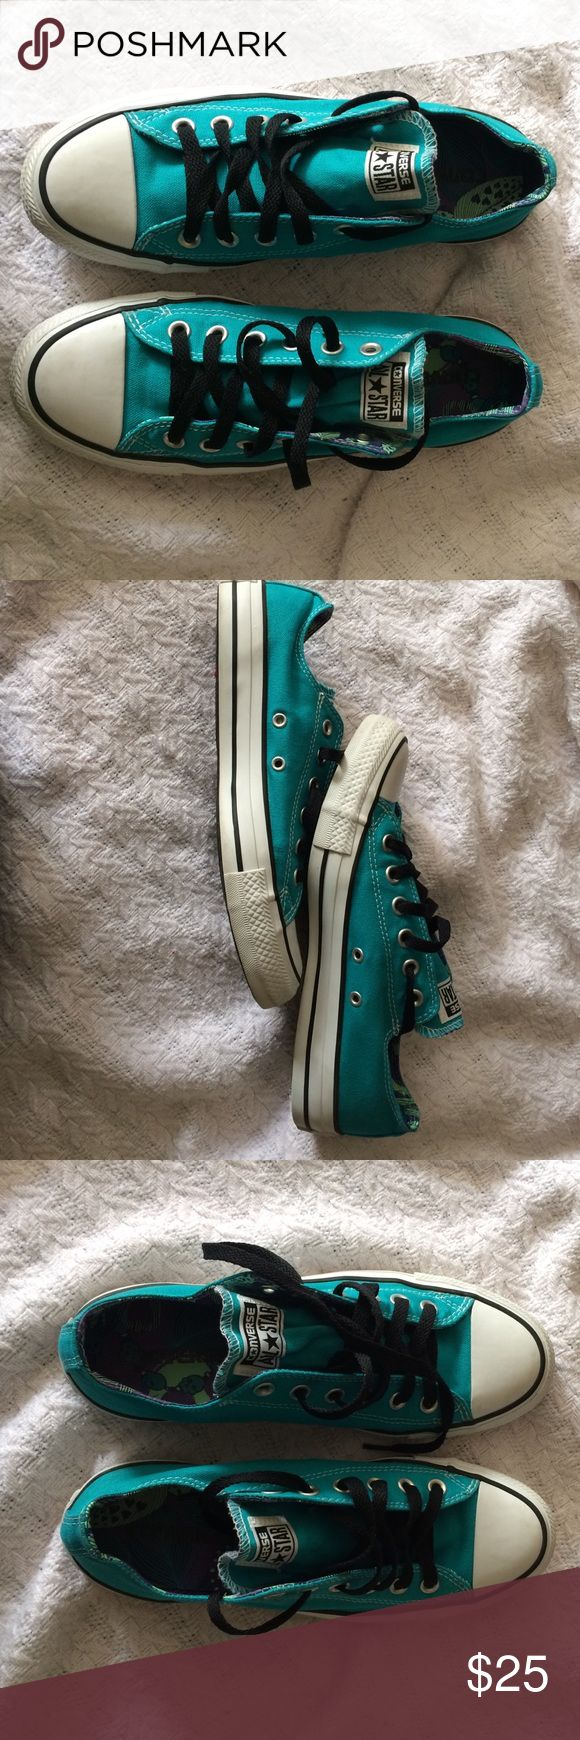 Teal/Bright Blue Converse Teal converse; black laces; patterned interior Converse Shoes Sneakers